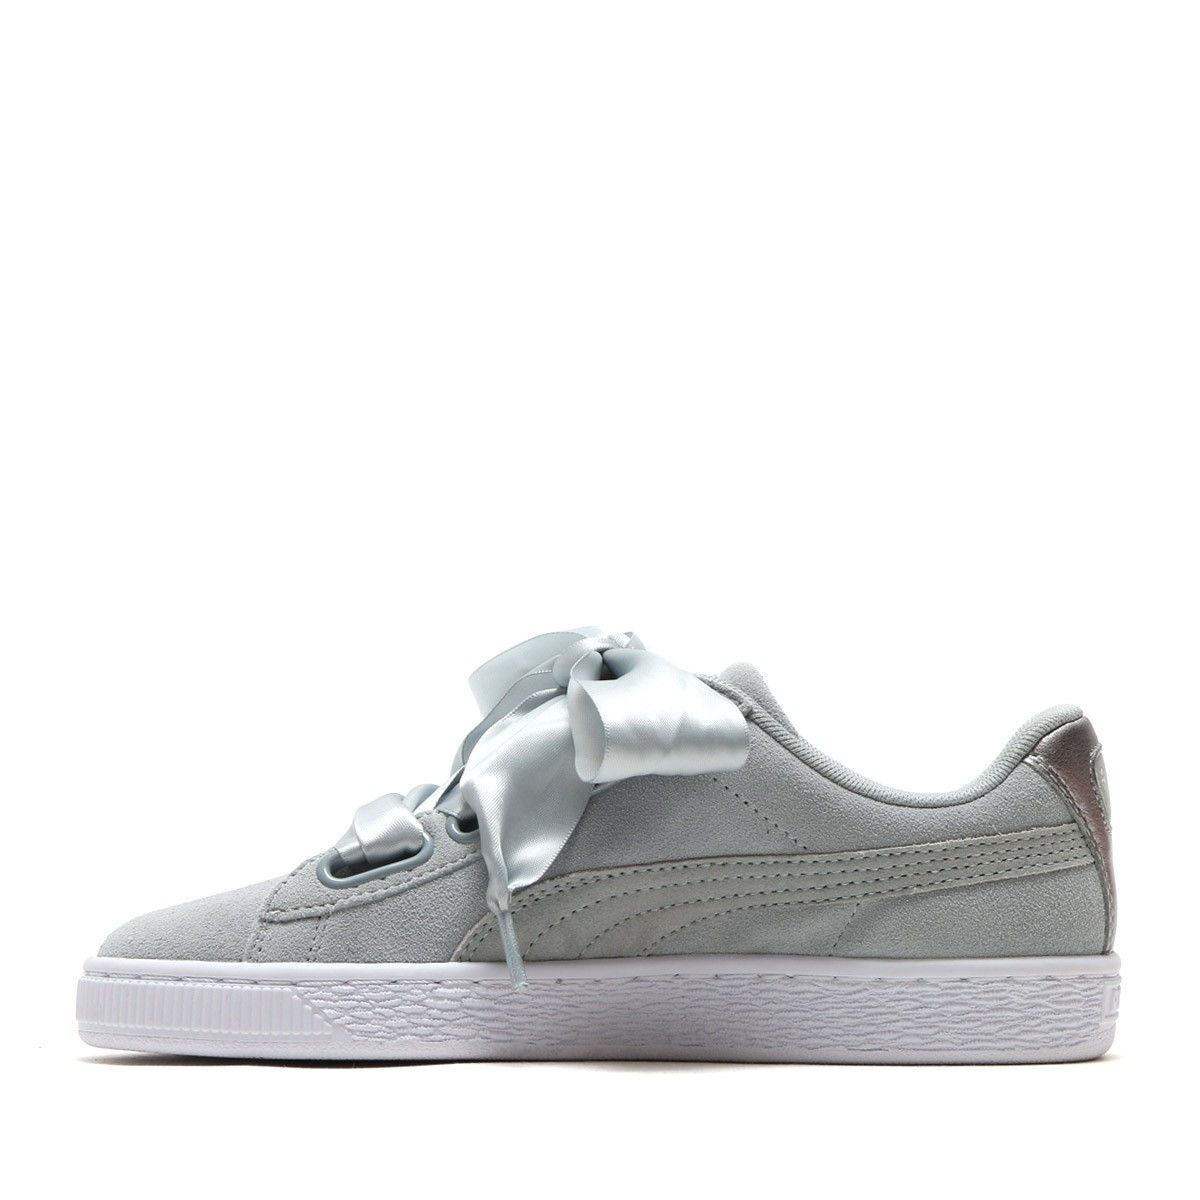 on sale d85e7 22e65 Basket Puma Suede Heart Metallic Safari - 364083-02 - Pegashoes